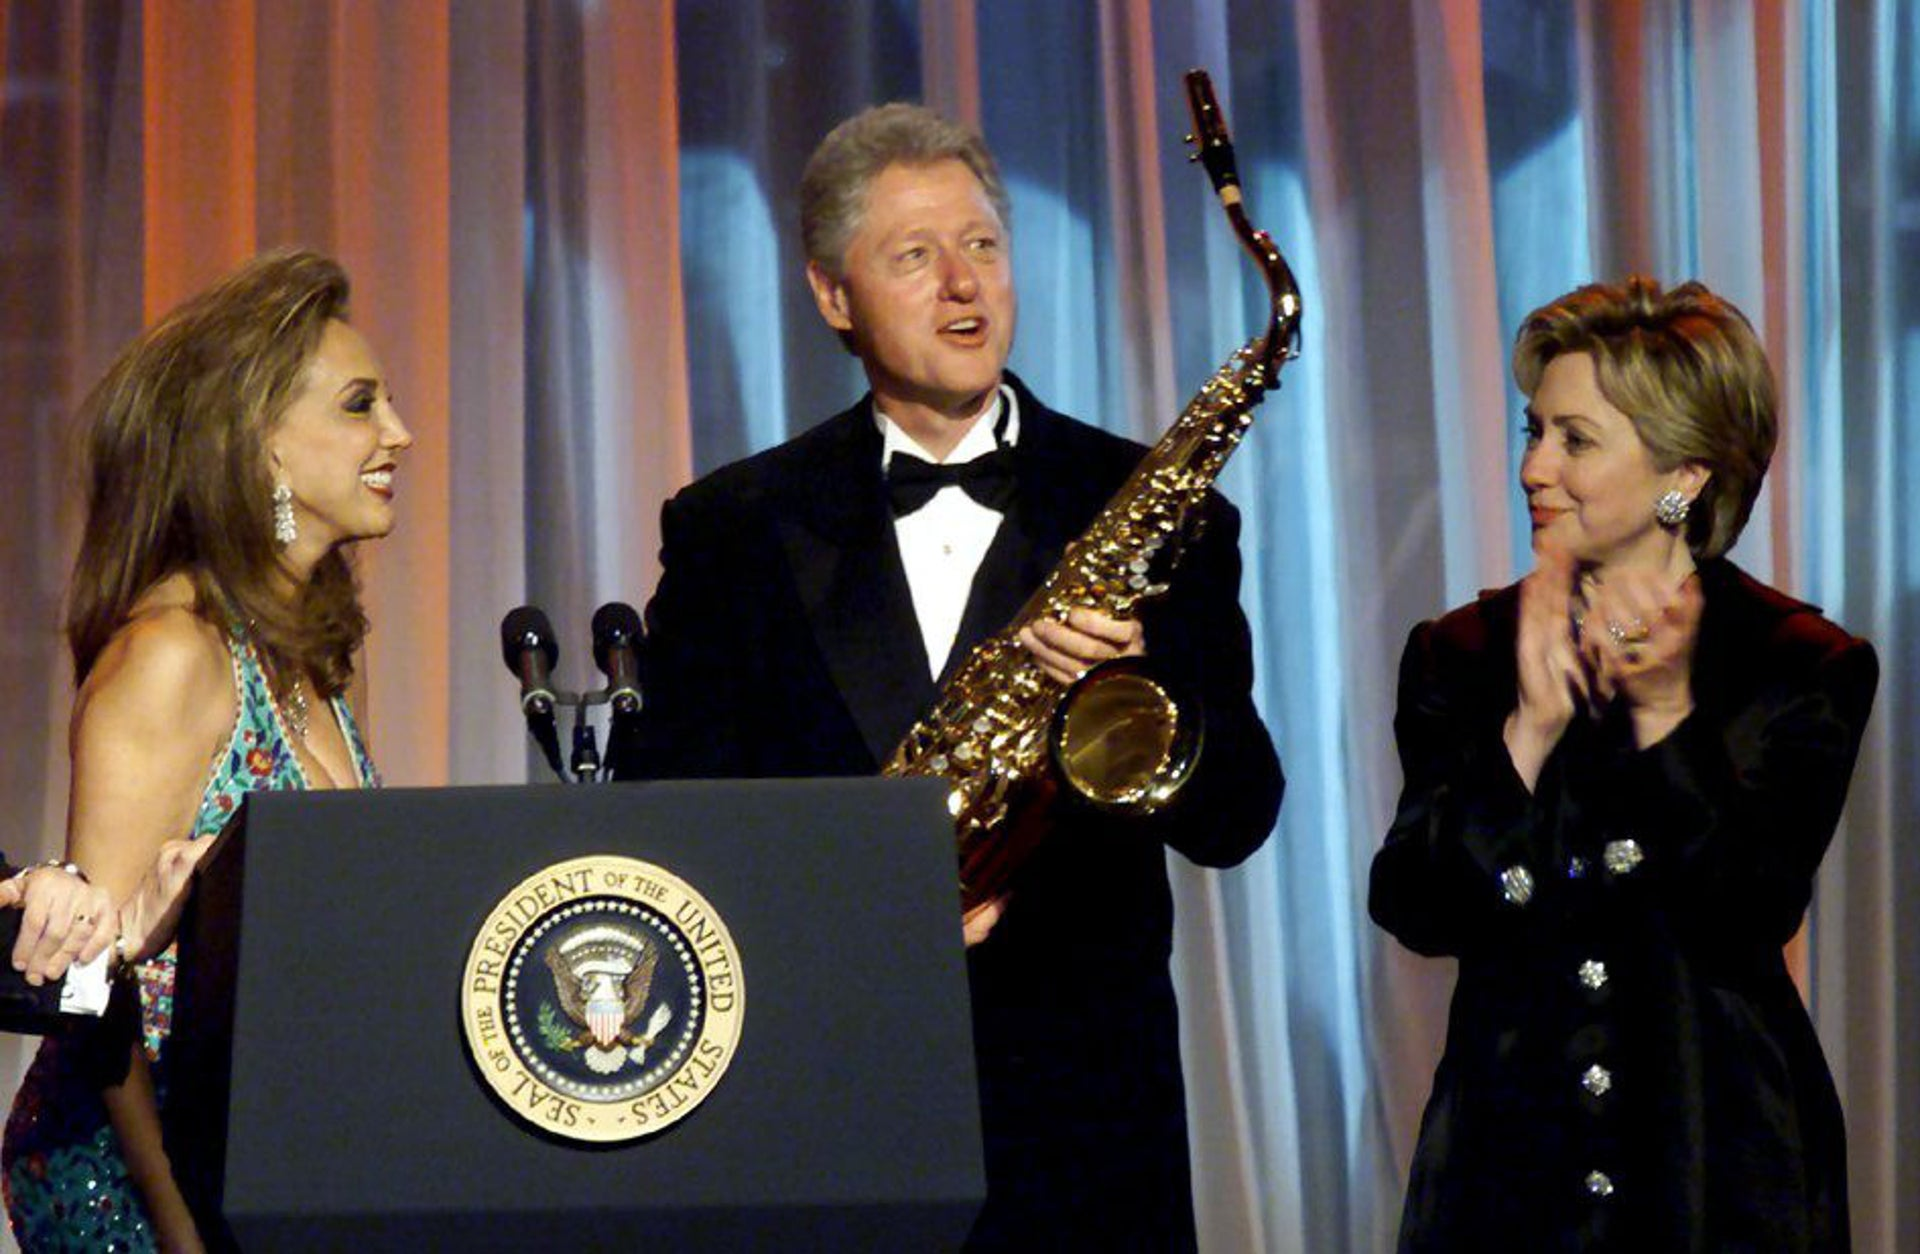 Denise Rich (L) presents former U.S. President Bill Clinton with a saxaphone at the G&P Foundation gala in New York City, in this file photo from November 30, 2000. Former President Clinton has come under intense scrutiny since he left office following a January 20 pardon he granted Denise Rich's ex-husband, financial trader Marc Rich just hours before leaving the White House. The pardon has resulted in questions in Congress and elsewhere over whether the pardon was related to contributions and pledges by Ms. Rich to the Democratic party and the Clinton Library project. First lady Hillary Rodham Clinton applauds at right.